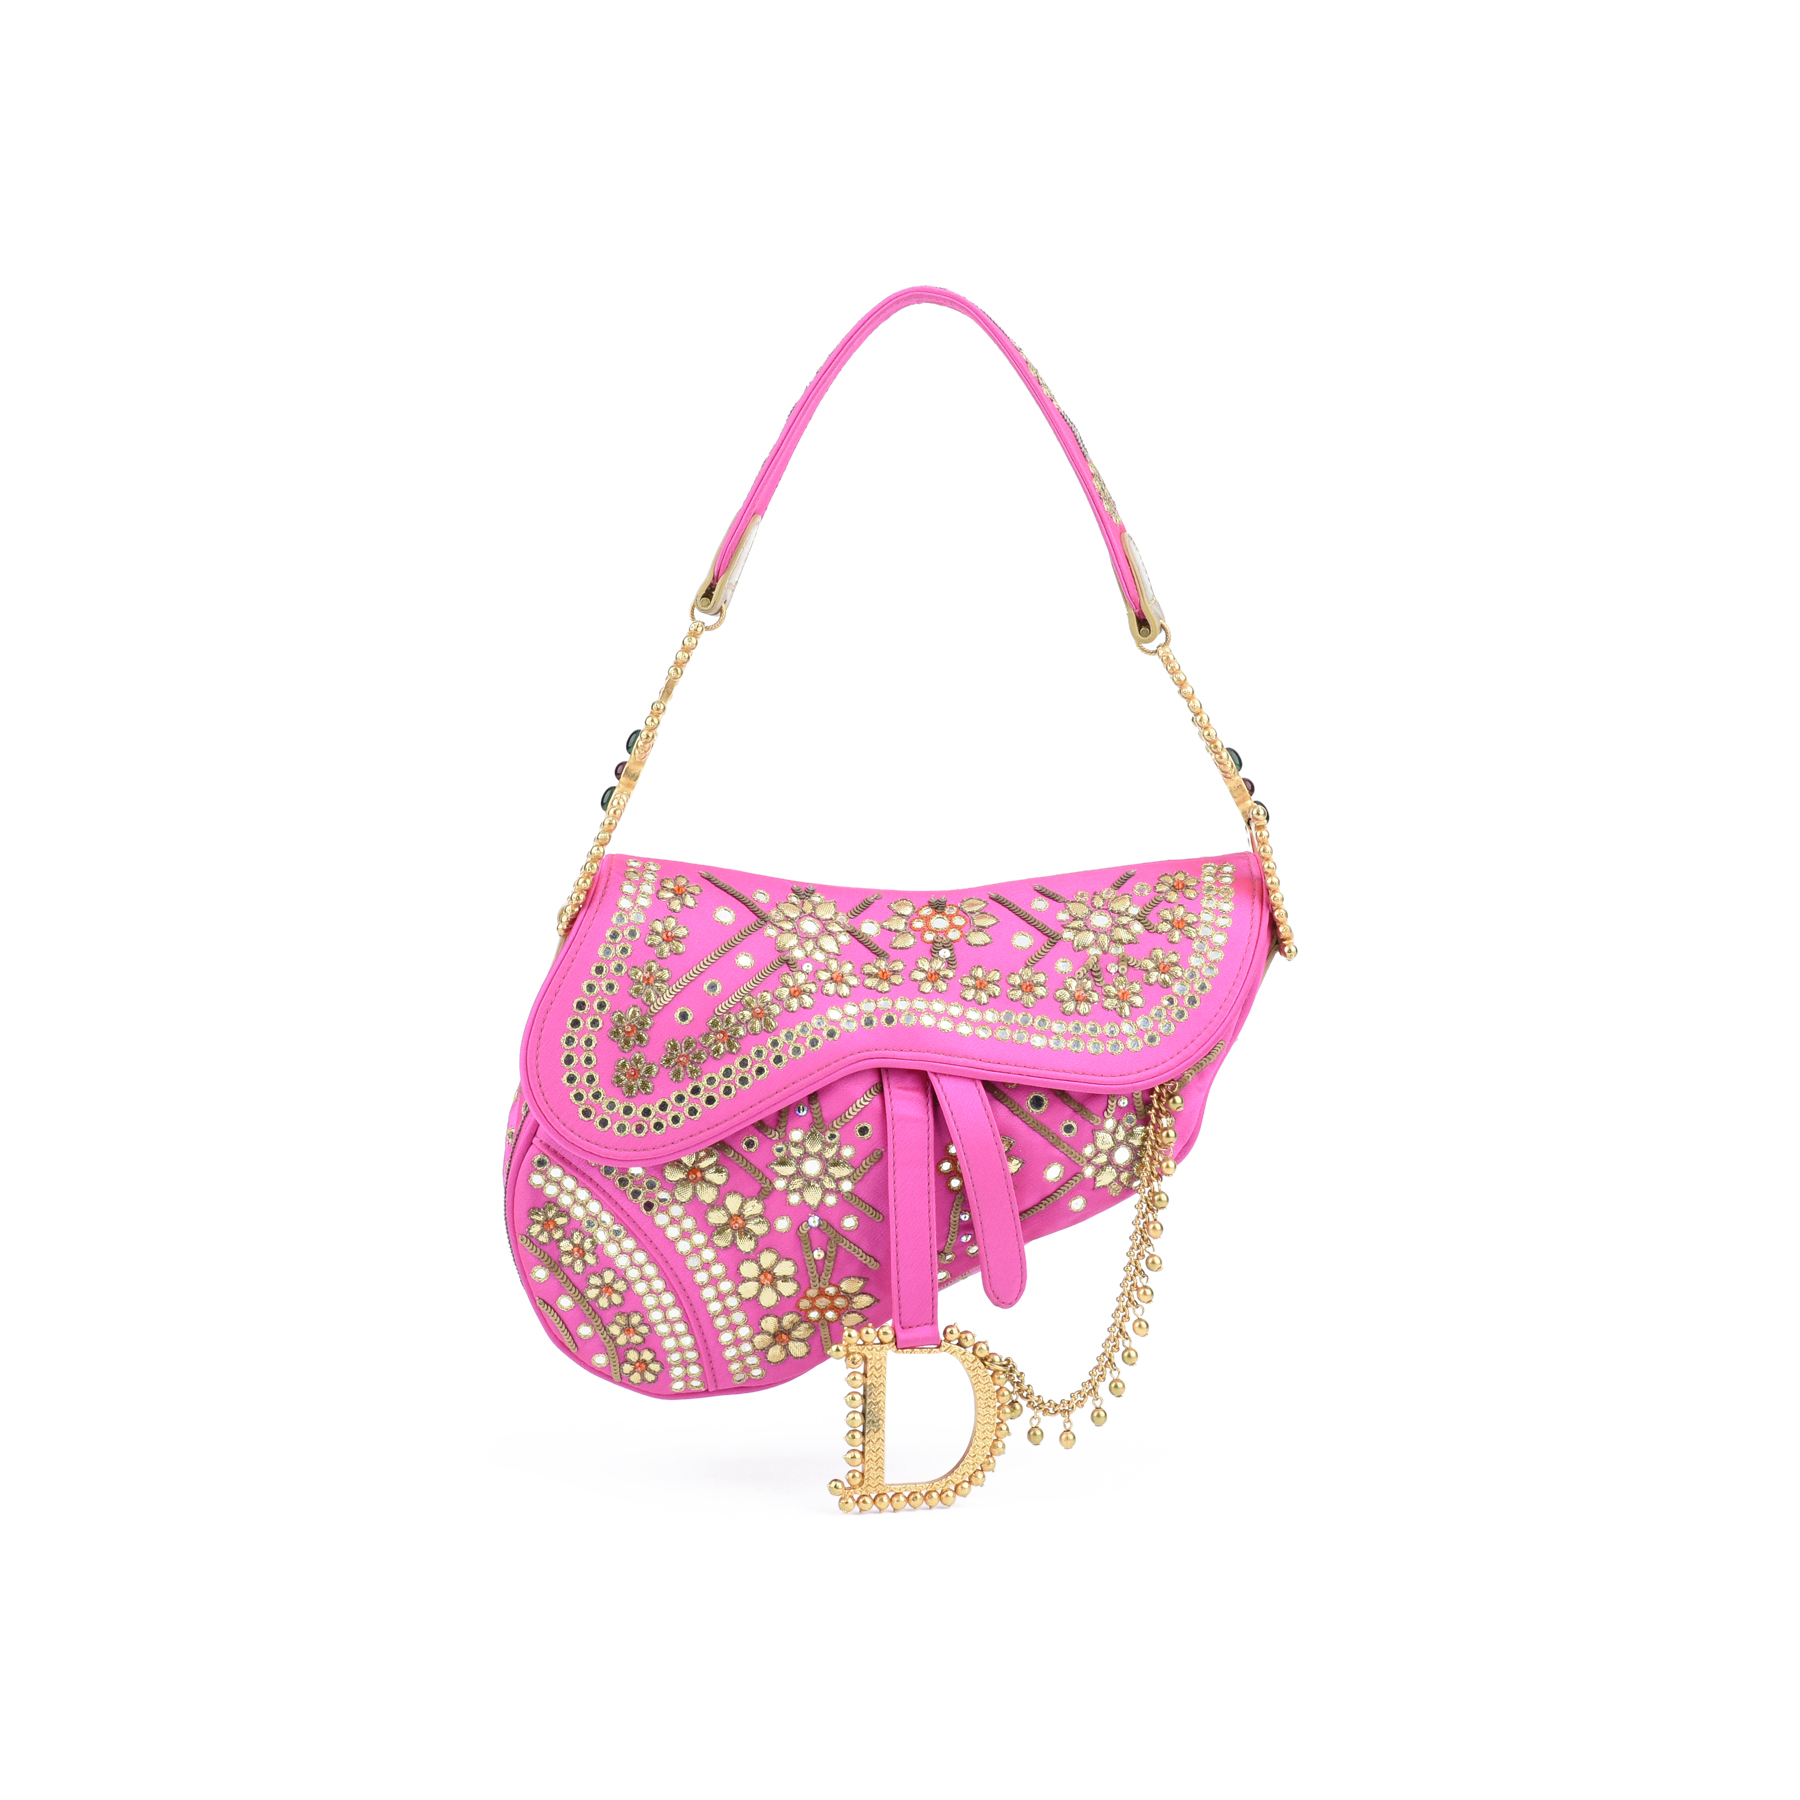 6a8f2612df4a Authentic Second Hand Christian Dior India Saddle Bag (PSS-420-00017 ...